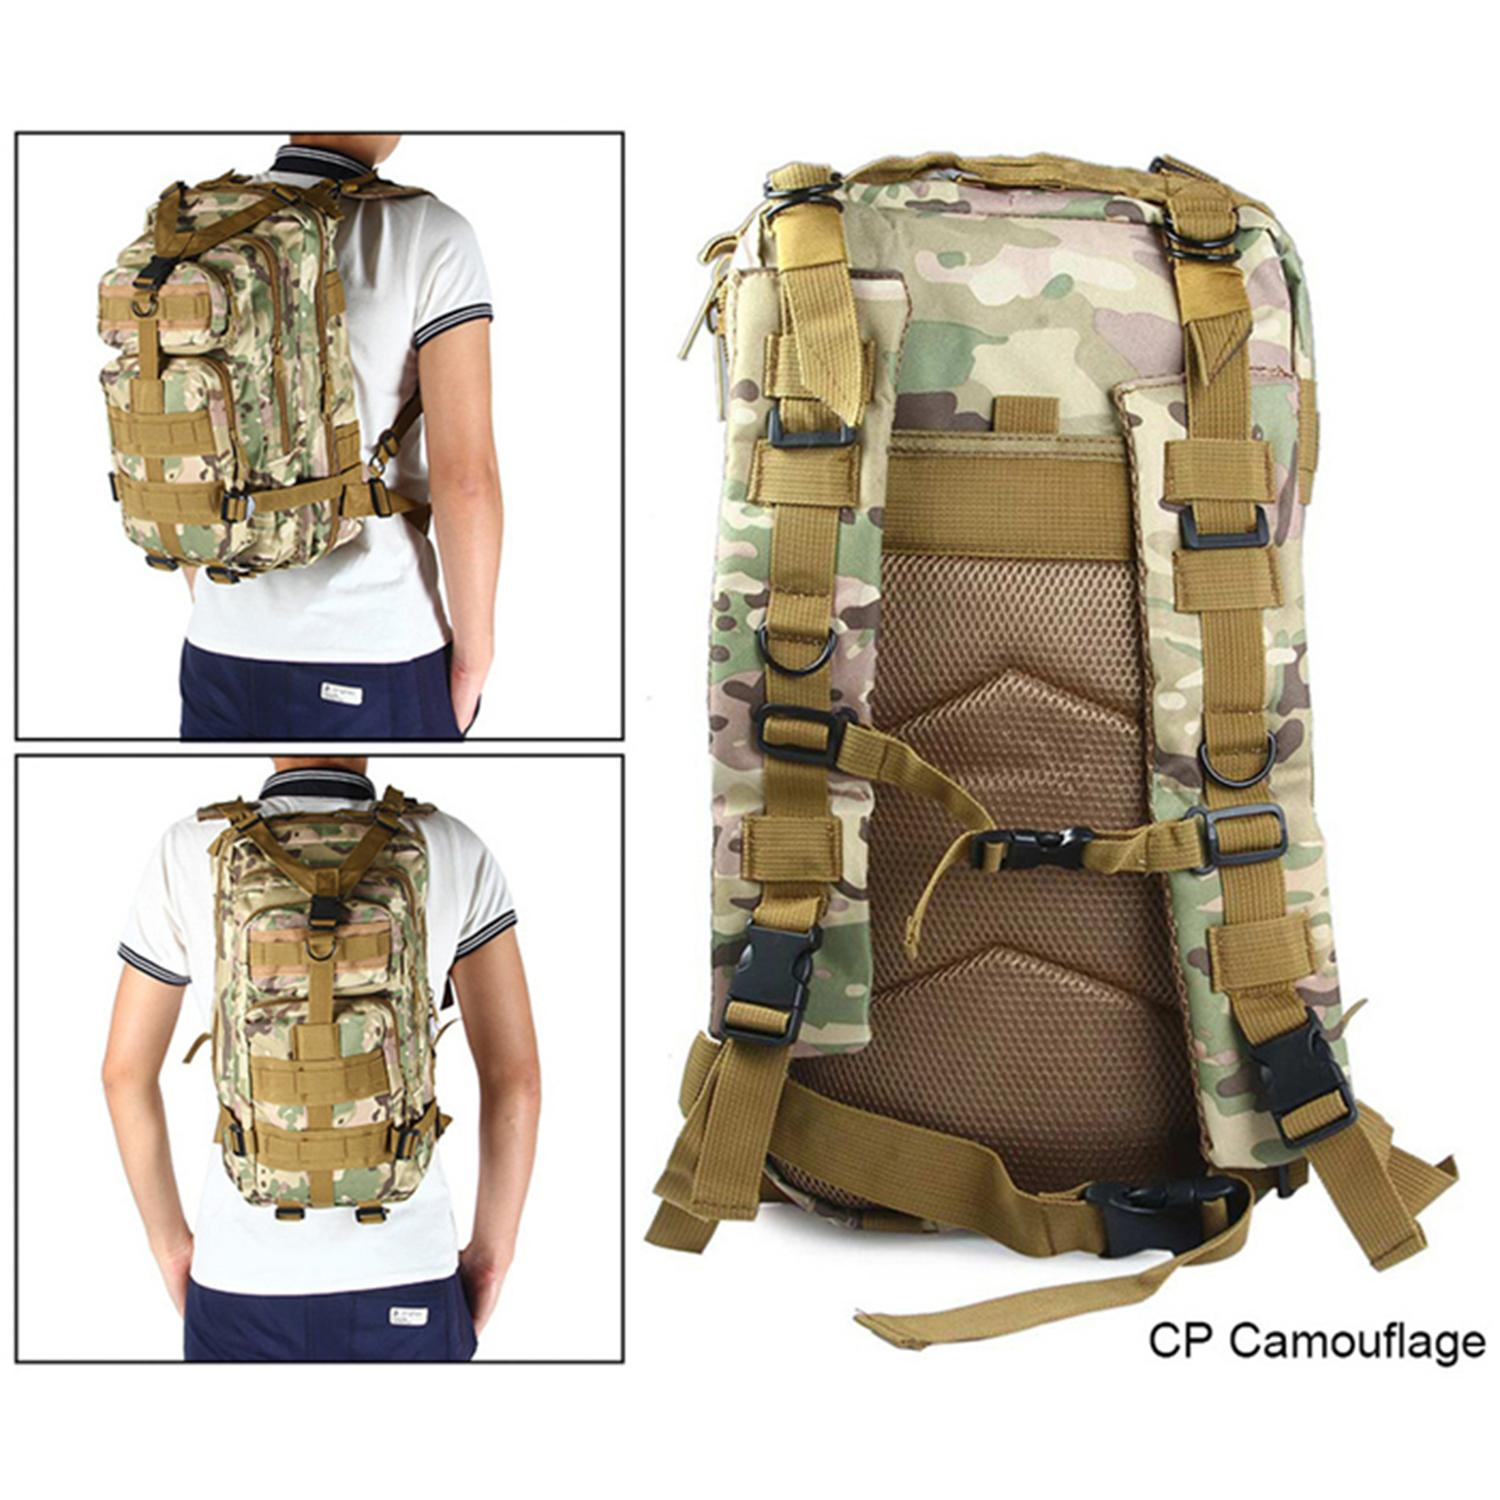 25l Military Bag Army Tactical Outdoor Camping Backpack Oxford For Cycling Hiking Sports Climbing Bag By Happy Tree.